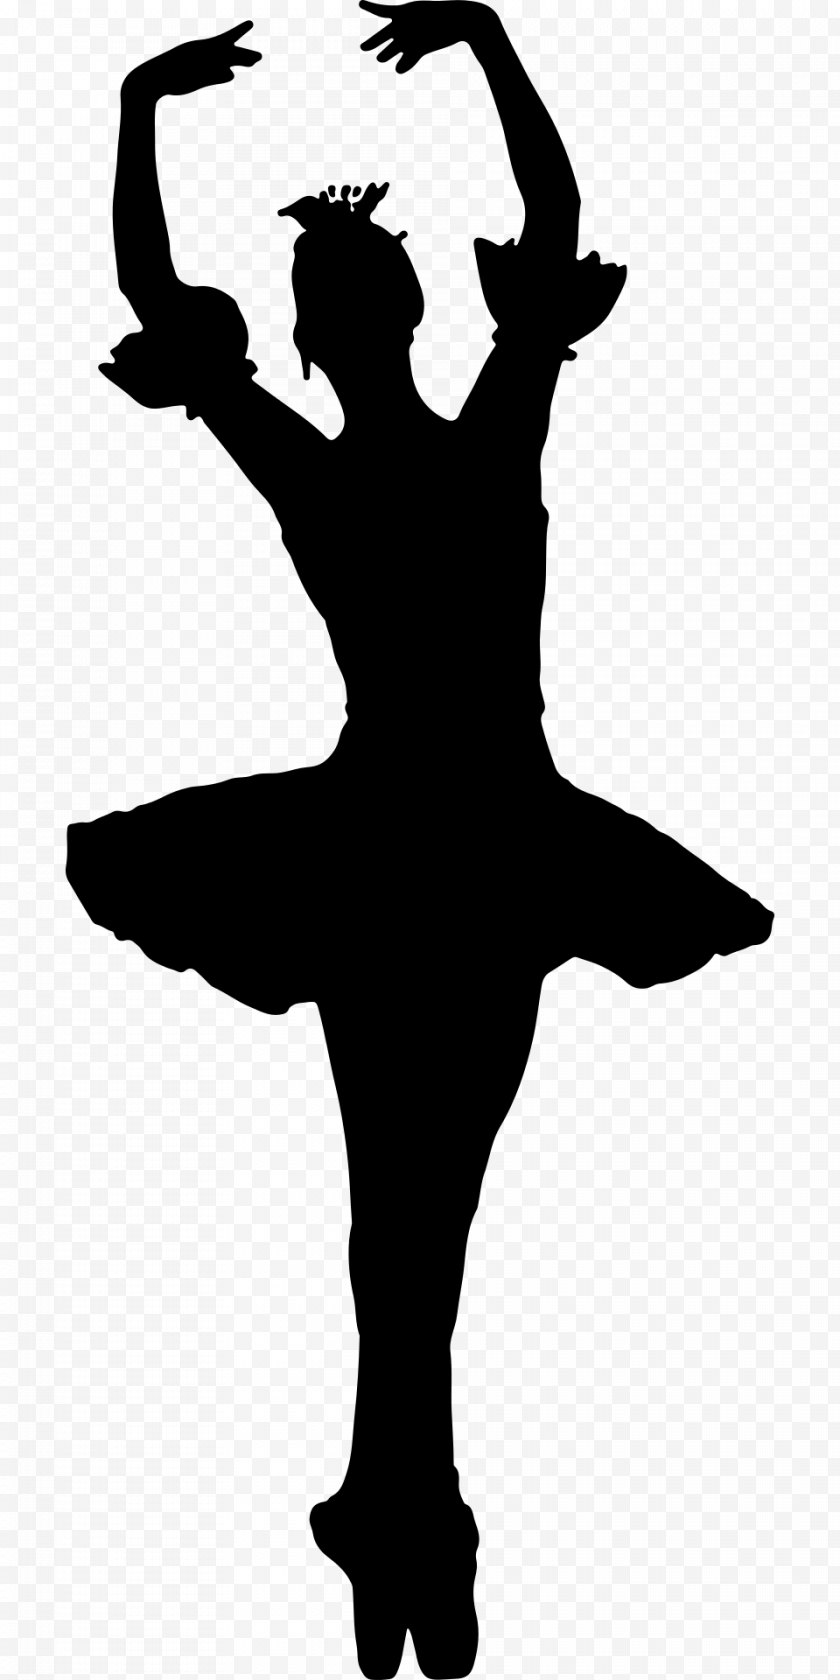 Heart - Ballet Dancer Silhouette - Watercolor Free PNG